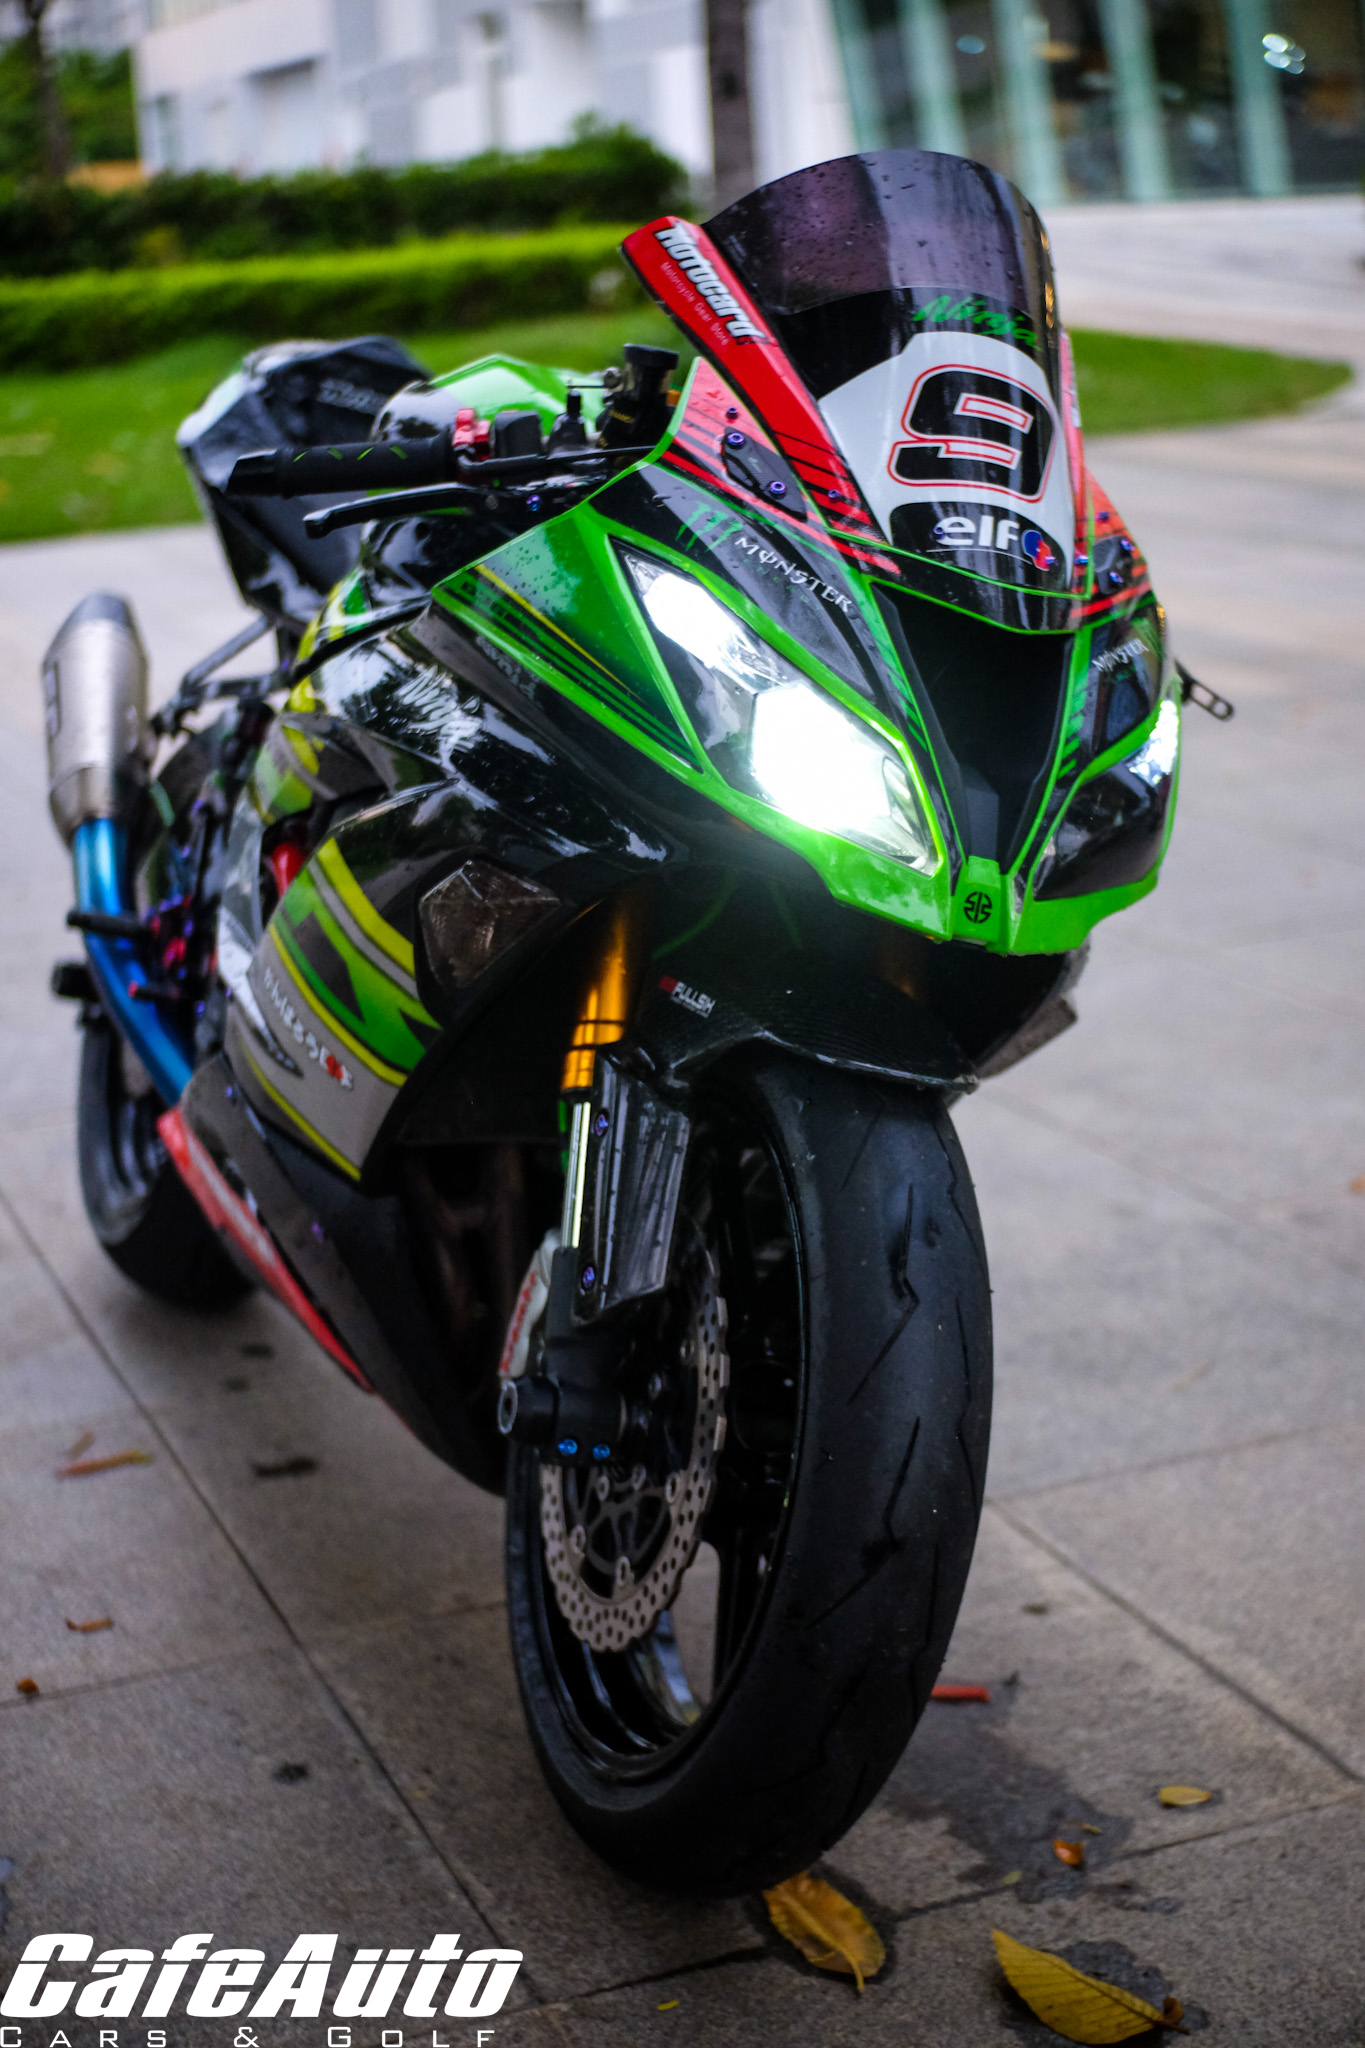 ZX6R-cafeautovn-2